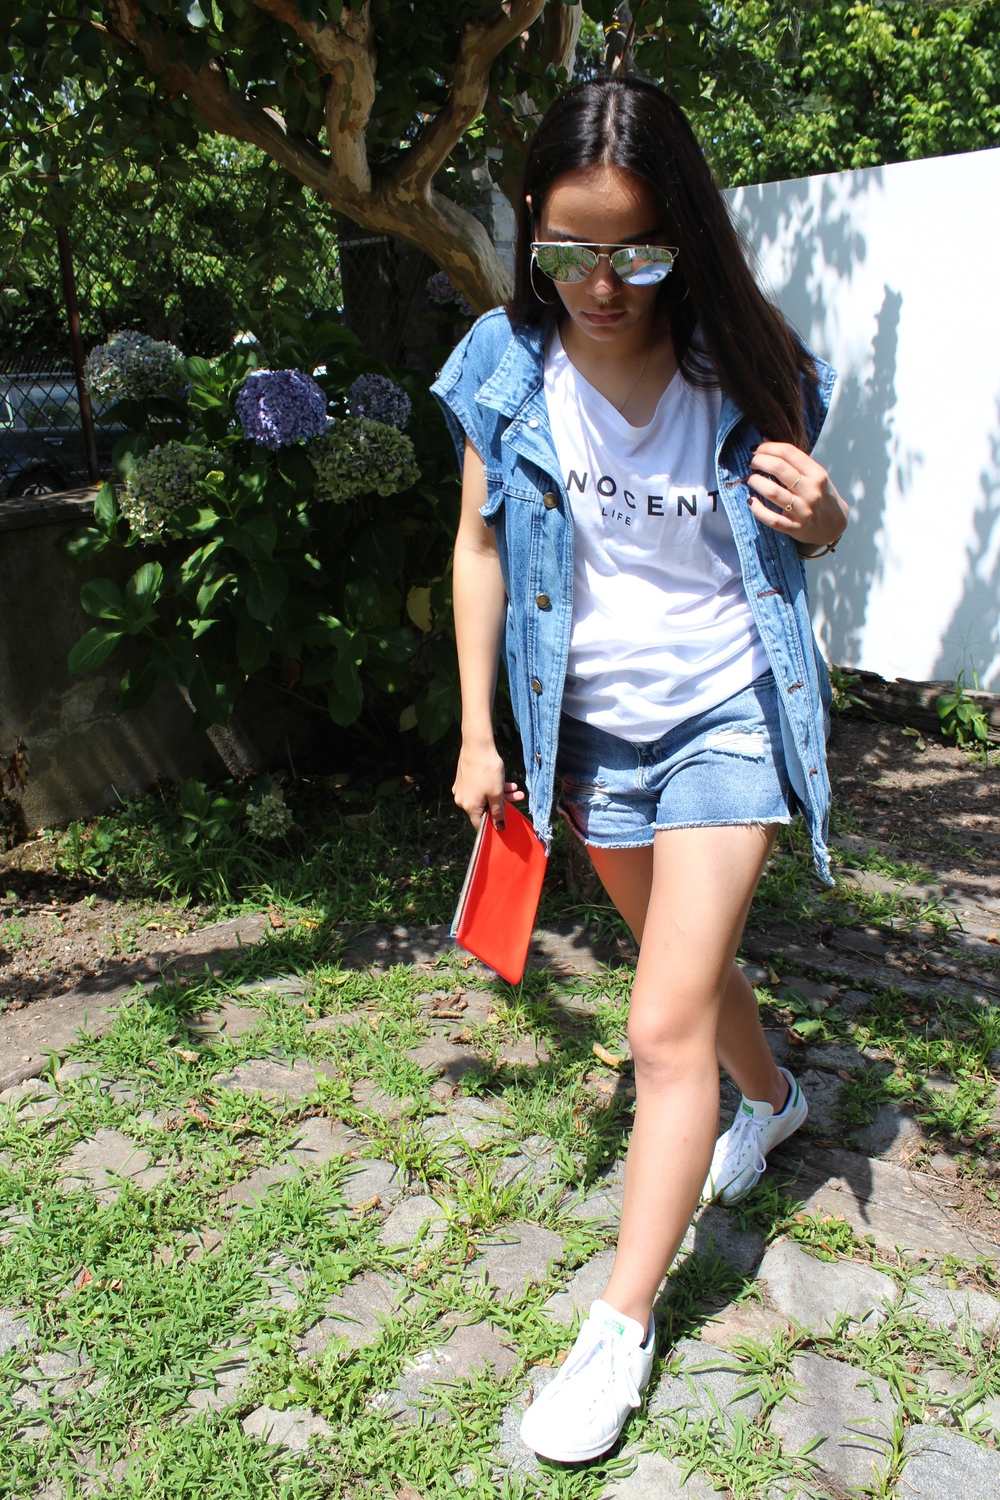 The Innocent Life t-shirt featured in a edgier/denim outfit.